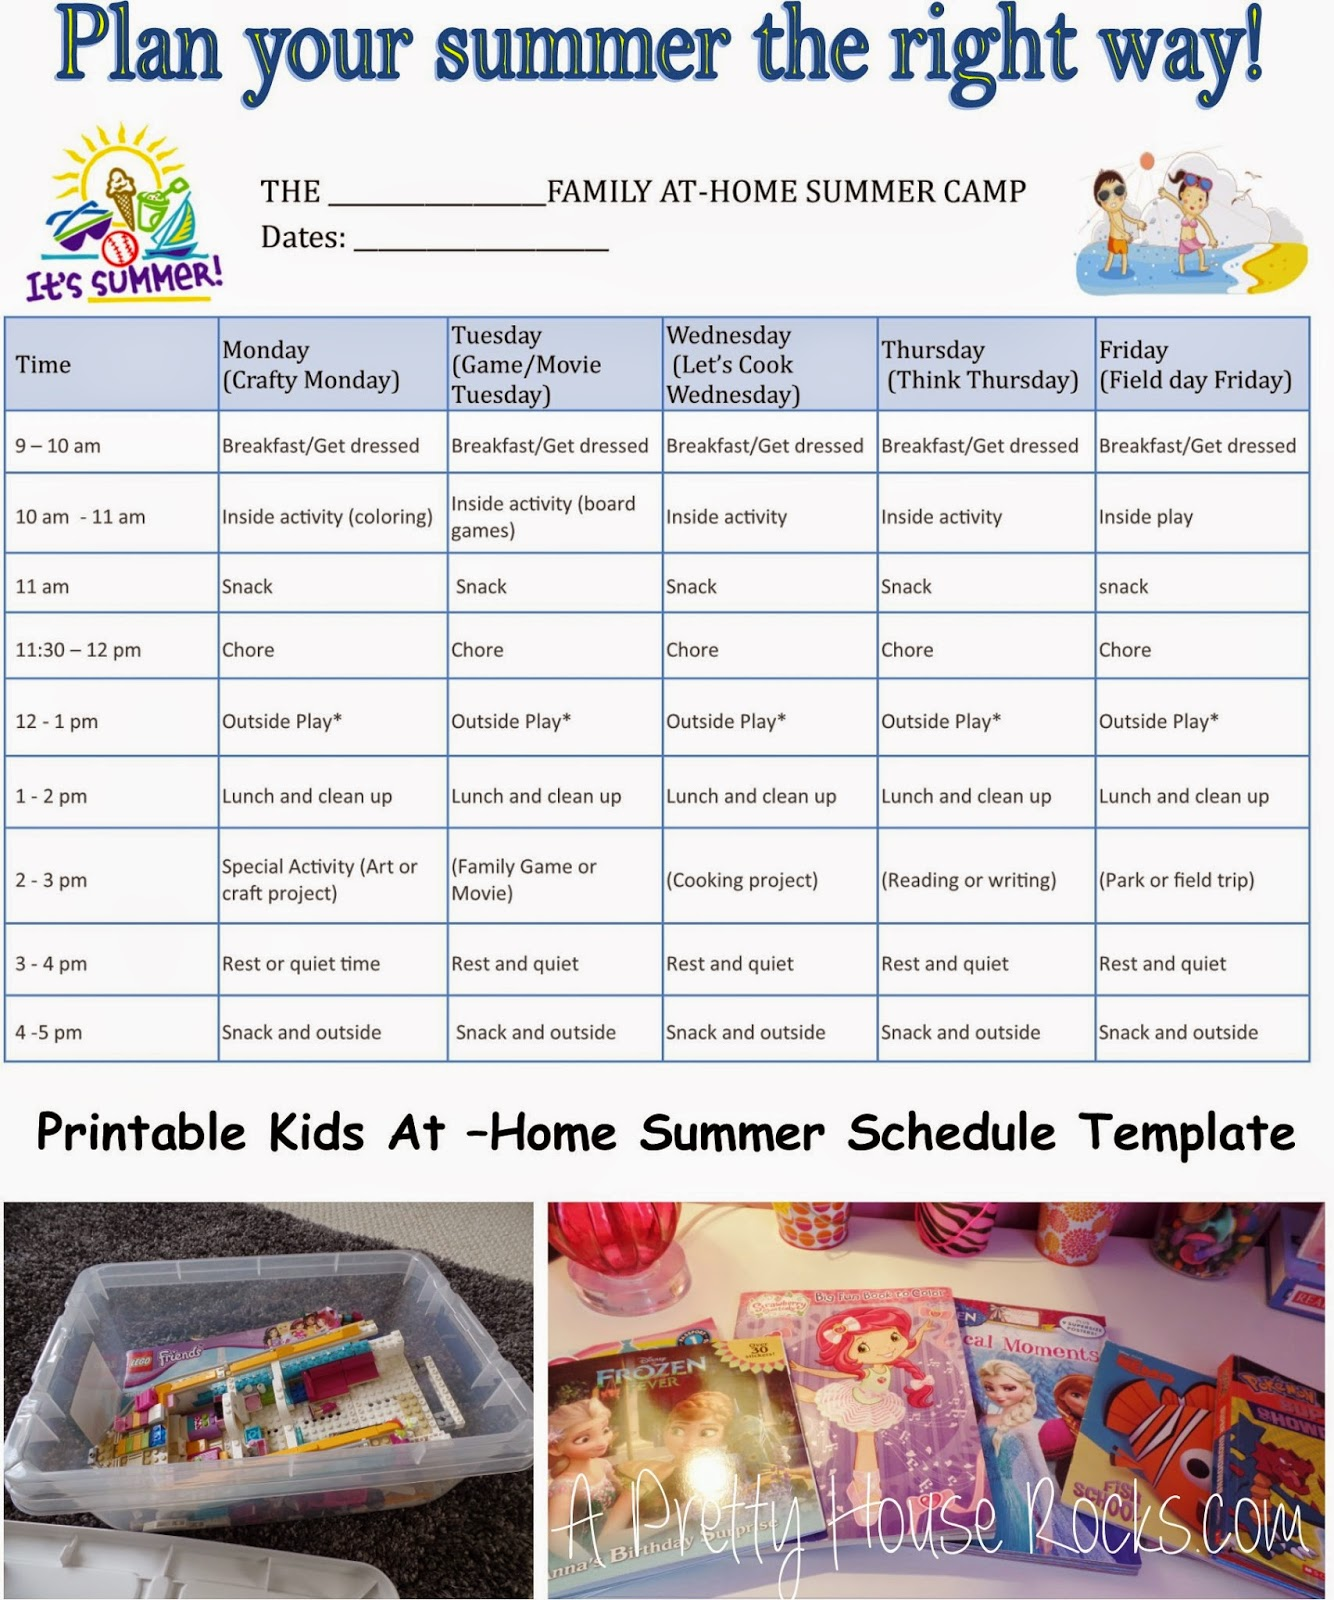 kids at home summer camp schedule printable template a. Black Bedroom Furniture Sets. Home Design Ideas